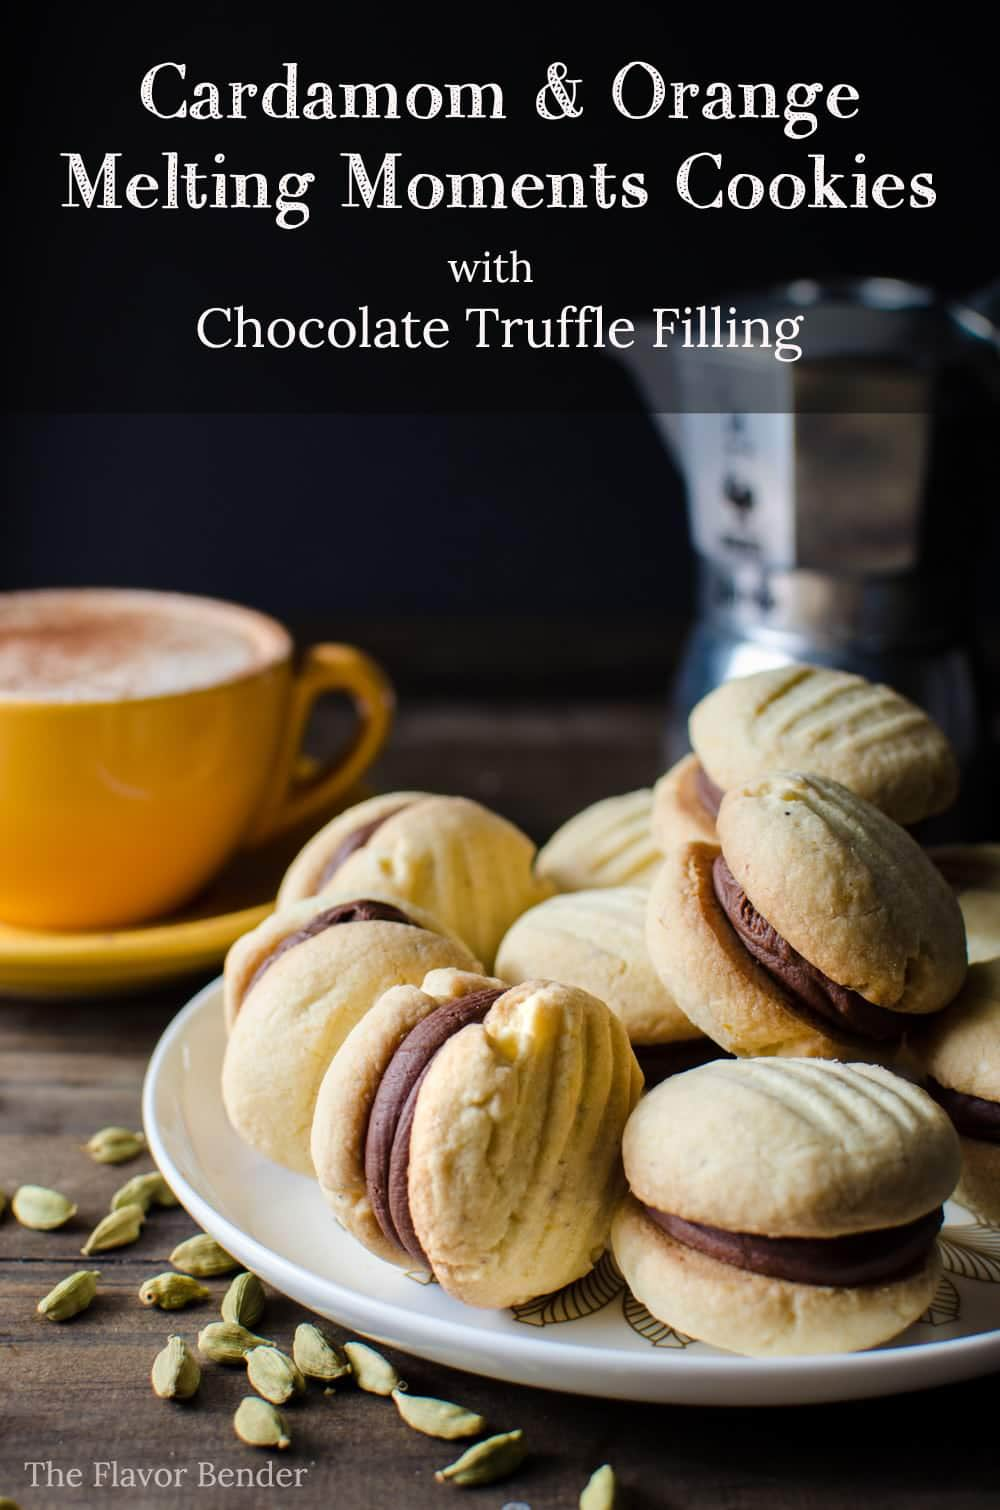 Cardamom and Orange Melting Moments Cookies with Chocolate Truffle filling - Incredibly delicious cookies that melt in your mouth! It's like the shortbread cookie's more delicate, crisper cousin. So easy to make and it will disappear in seconds!